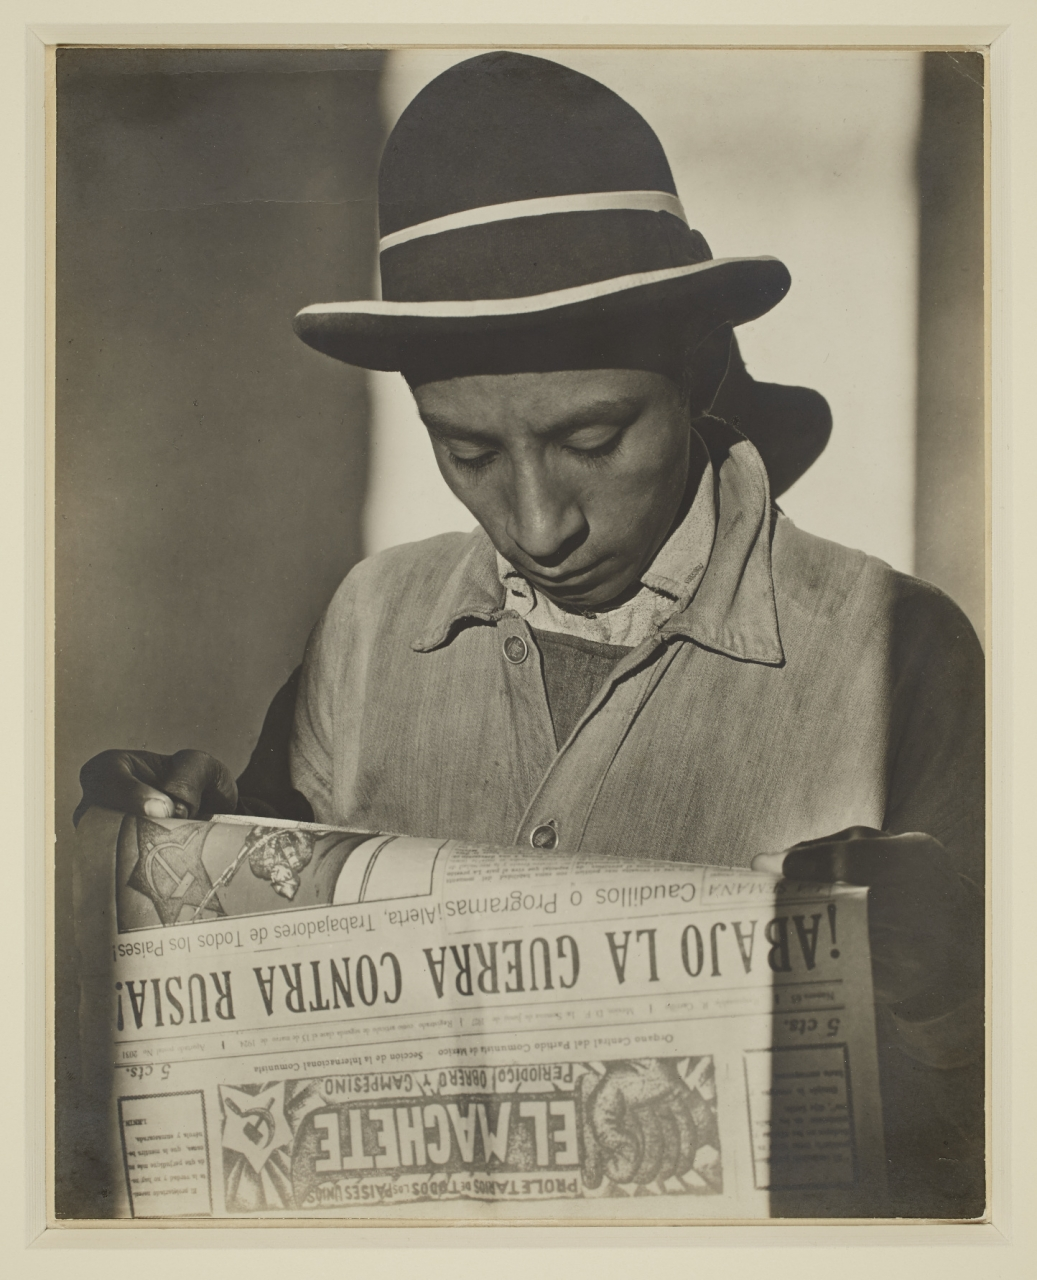 Tina Modotti, El Machete, 1926. Gelatin silver print, Sheet: 23.8 × 18.8 cm. Gift of Harry and Ann Malcolmson, 2015 © Art Gallery of Ontario 2015/248. AGO.114618.